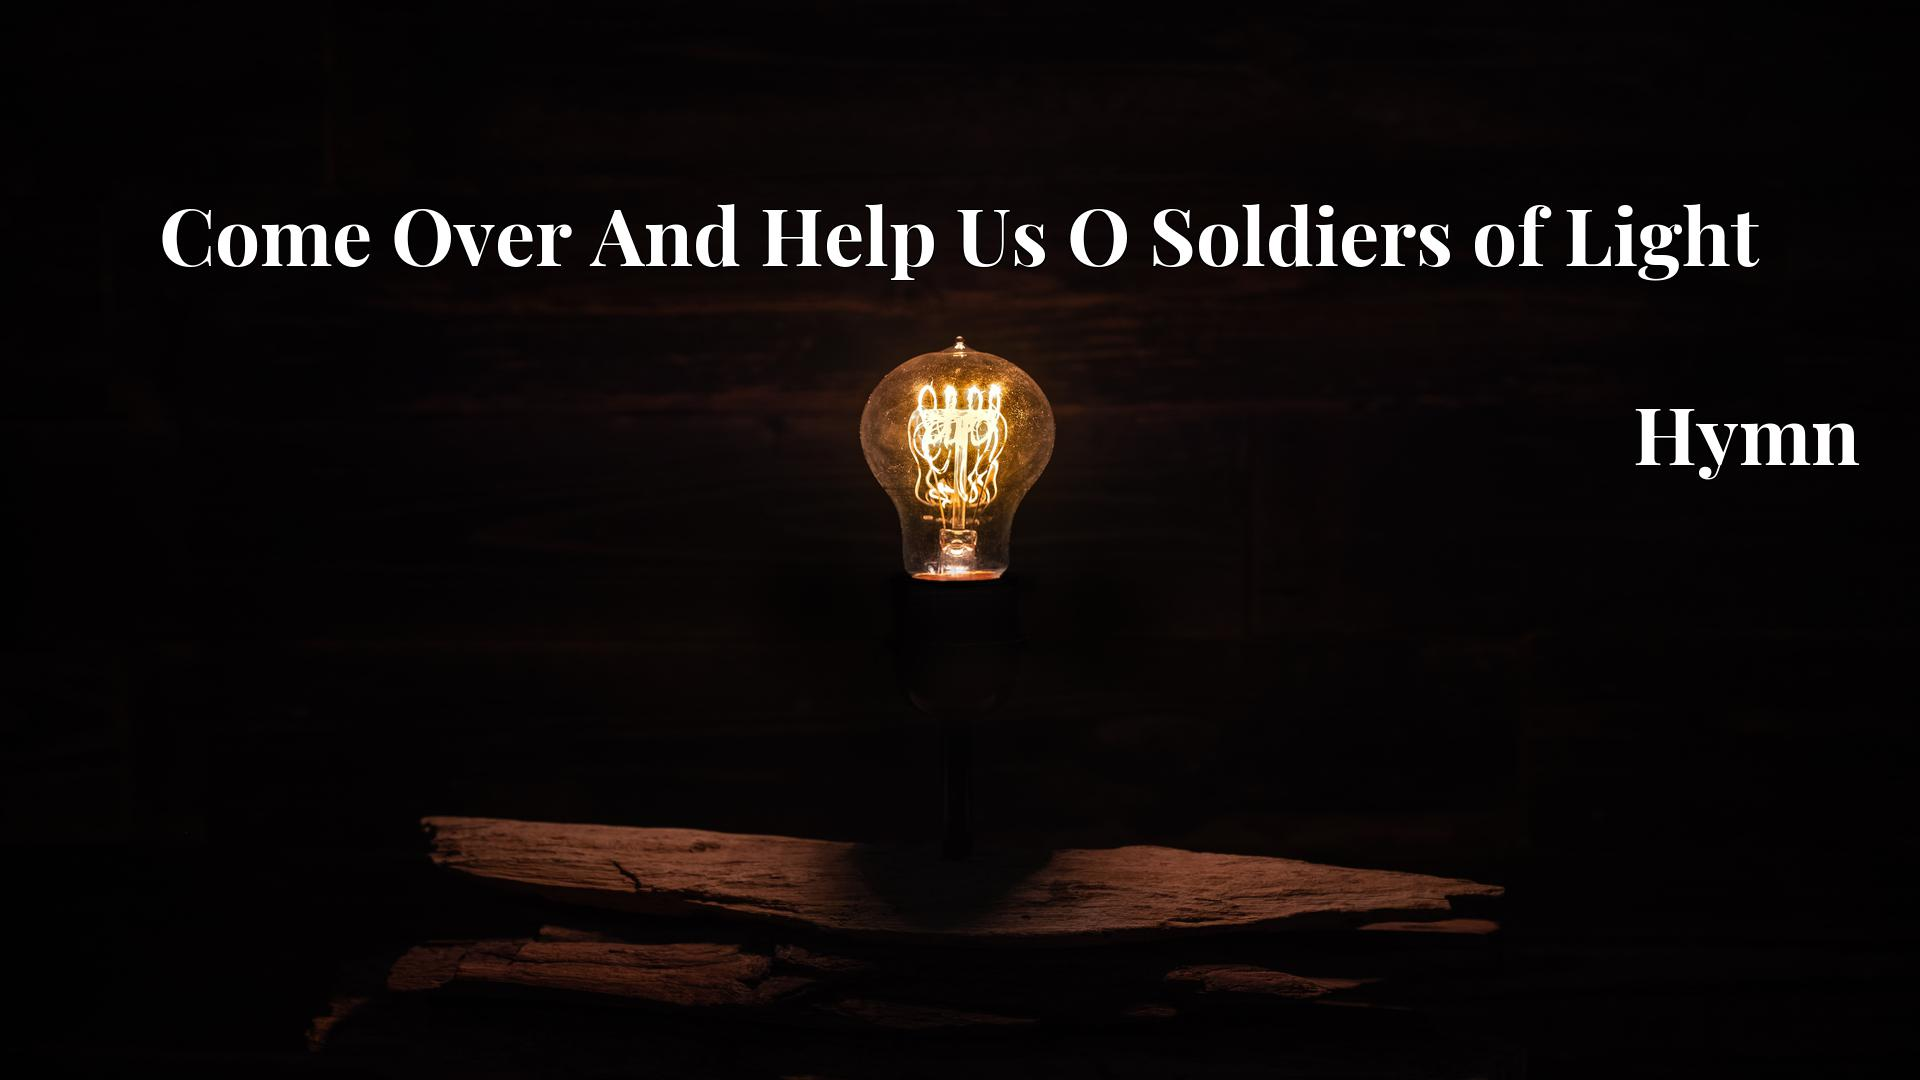 Come Over And Help Us O Soldiers of Light Hymn Lyric